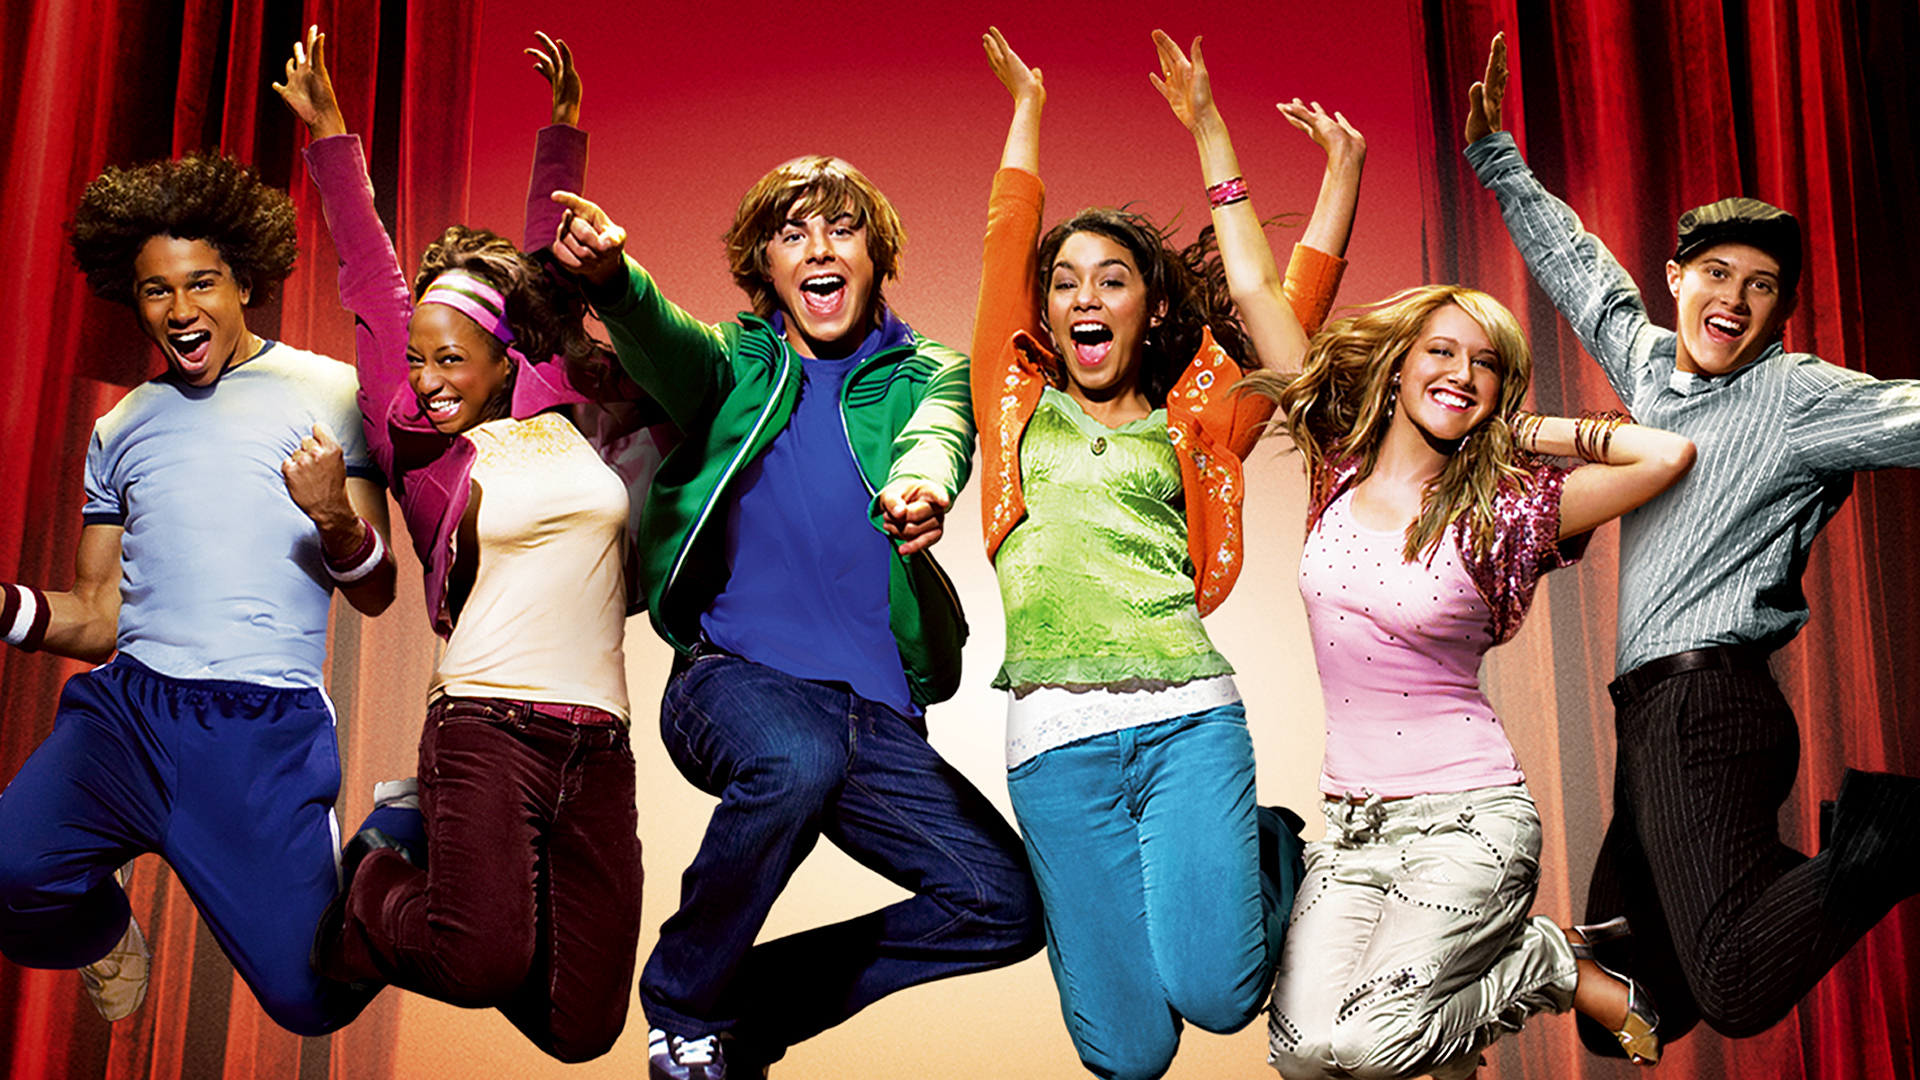 Directed by Kenny Ortega With Zac Efron Vanessa Hudgens Ashley Tisdale Lucas Grabeel A popular high school athlete and an academically gifted girl get roles in